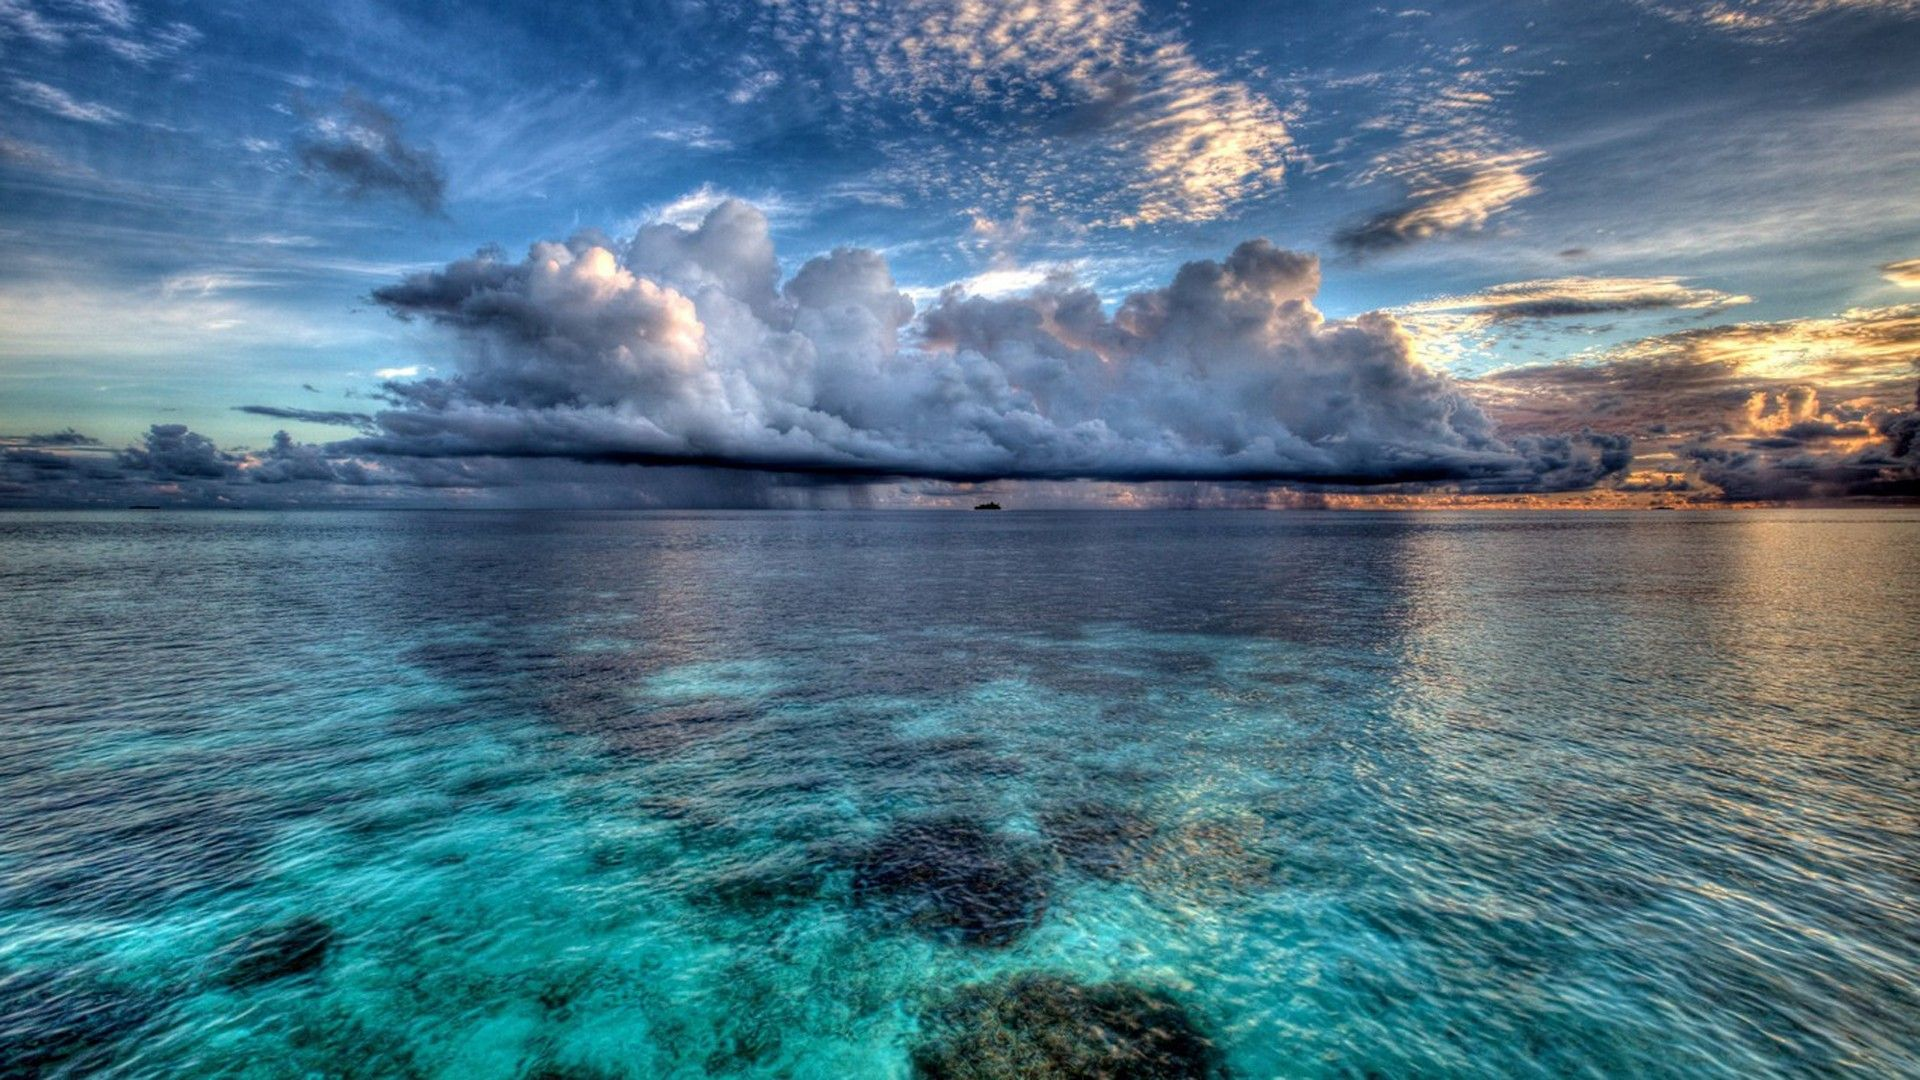 Pictures Of The Beautiful Ocean